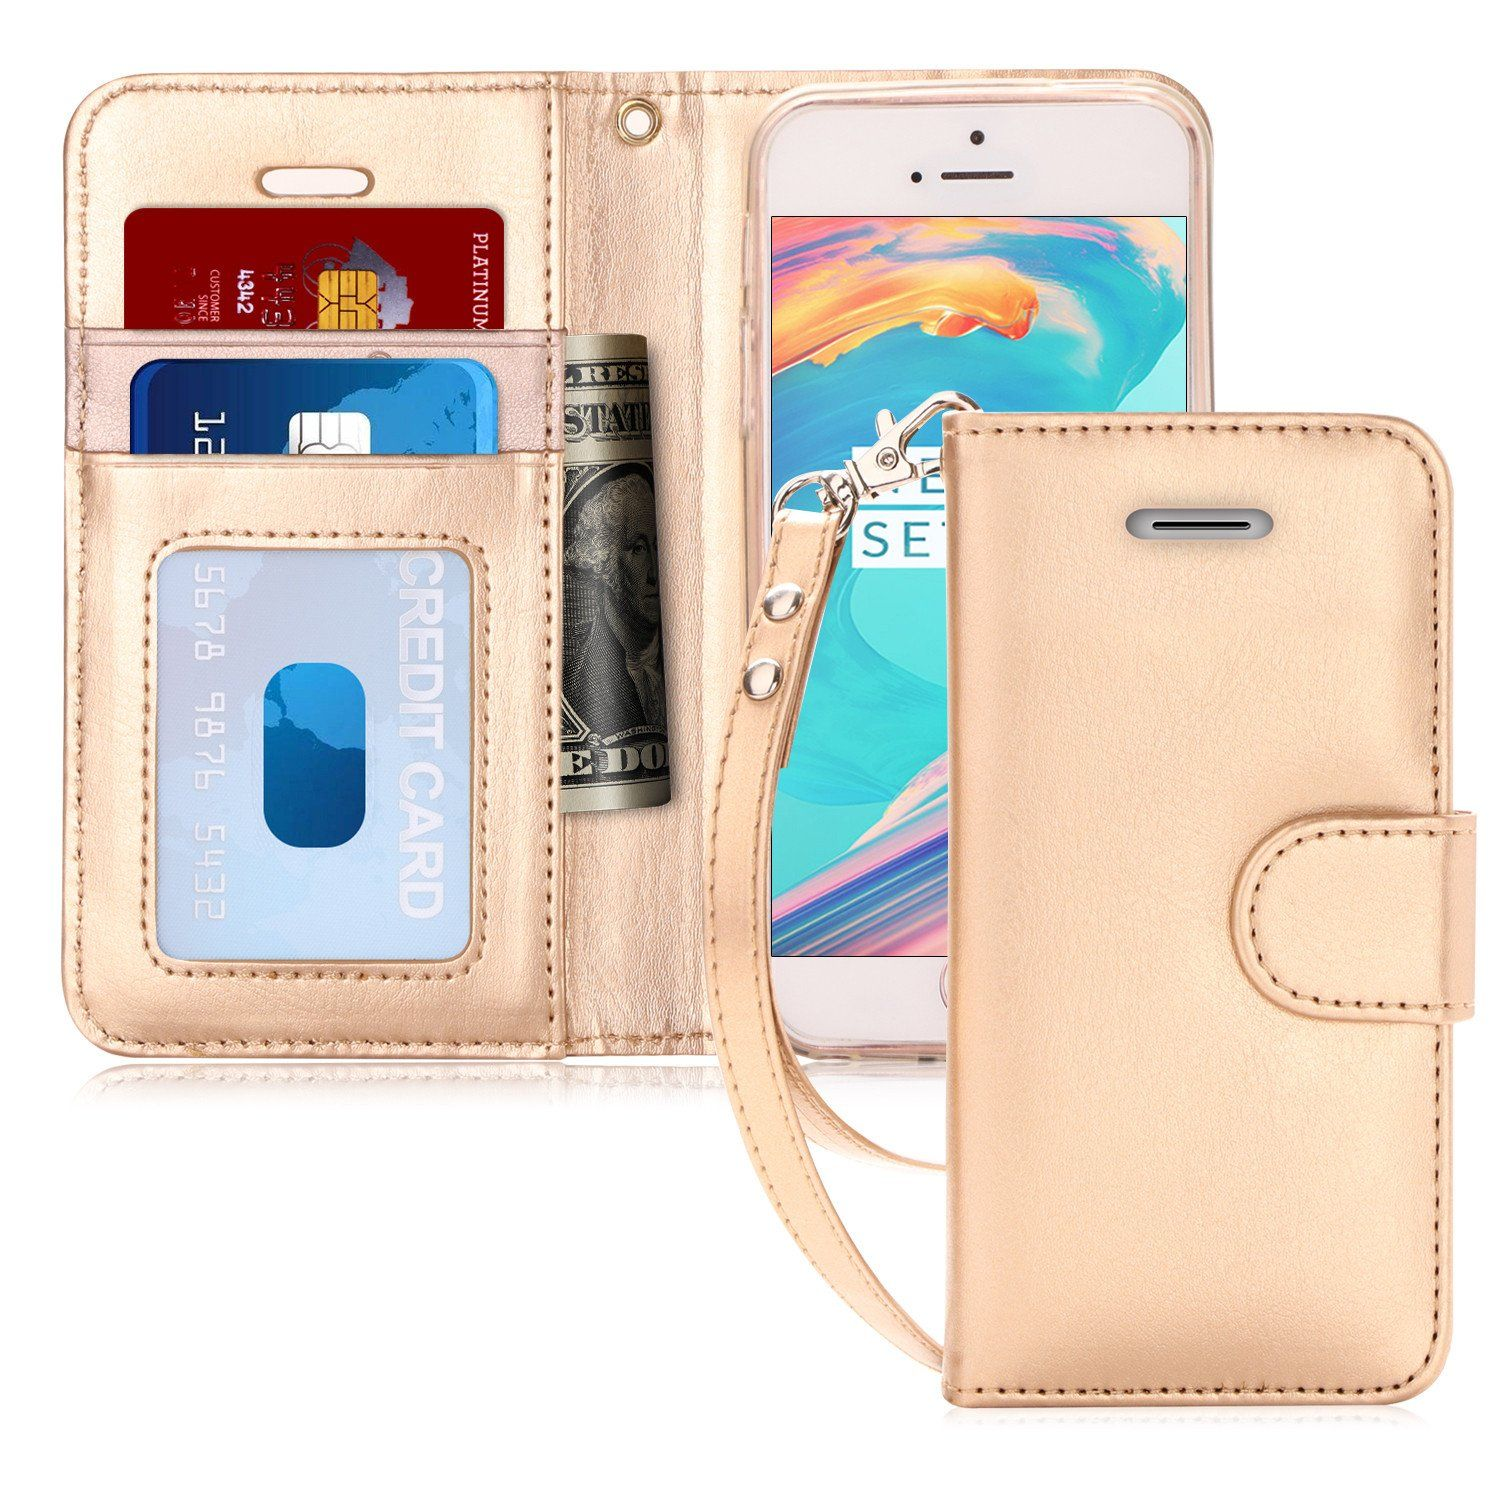 new products c15c6 9e7bf iPhone SE Case, iPhone 5S Case, FYY [Kickstand Feature] Flip Folio ...